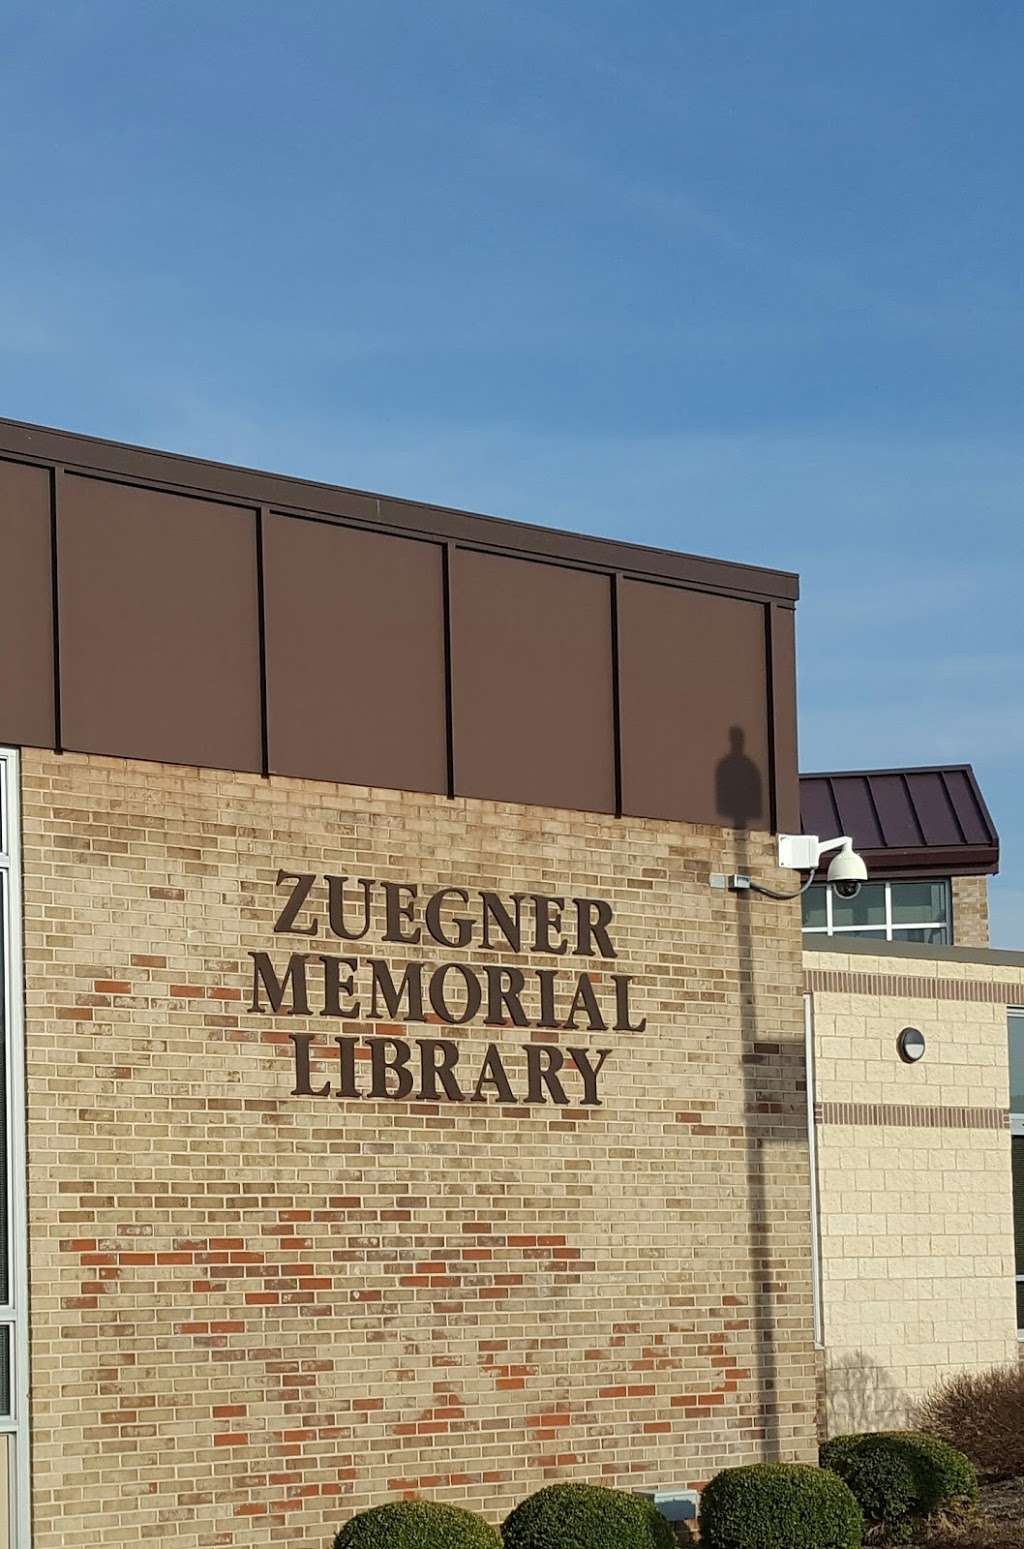 Zuegner Memorial Library - library  | Photo 2 of 2 | Address: 16-22 Junction Rd, Flemington, NJ 08822, USA